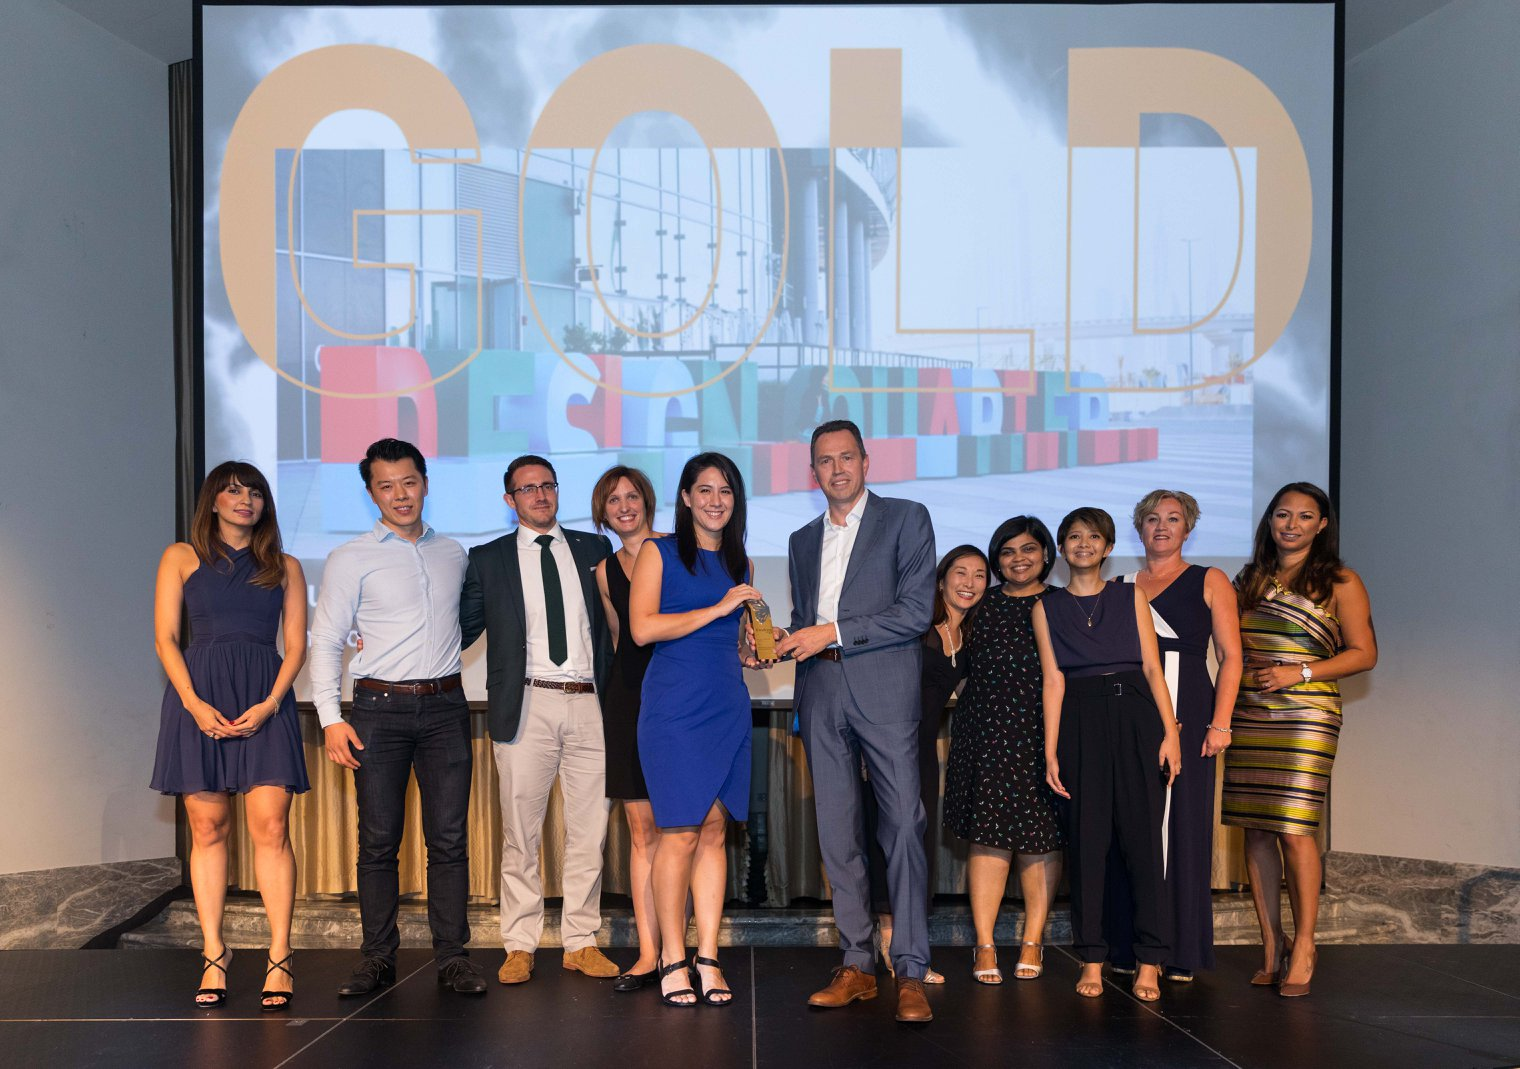 Endpoint wayfinding team receiving international industry award